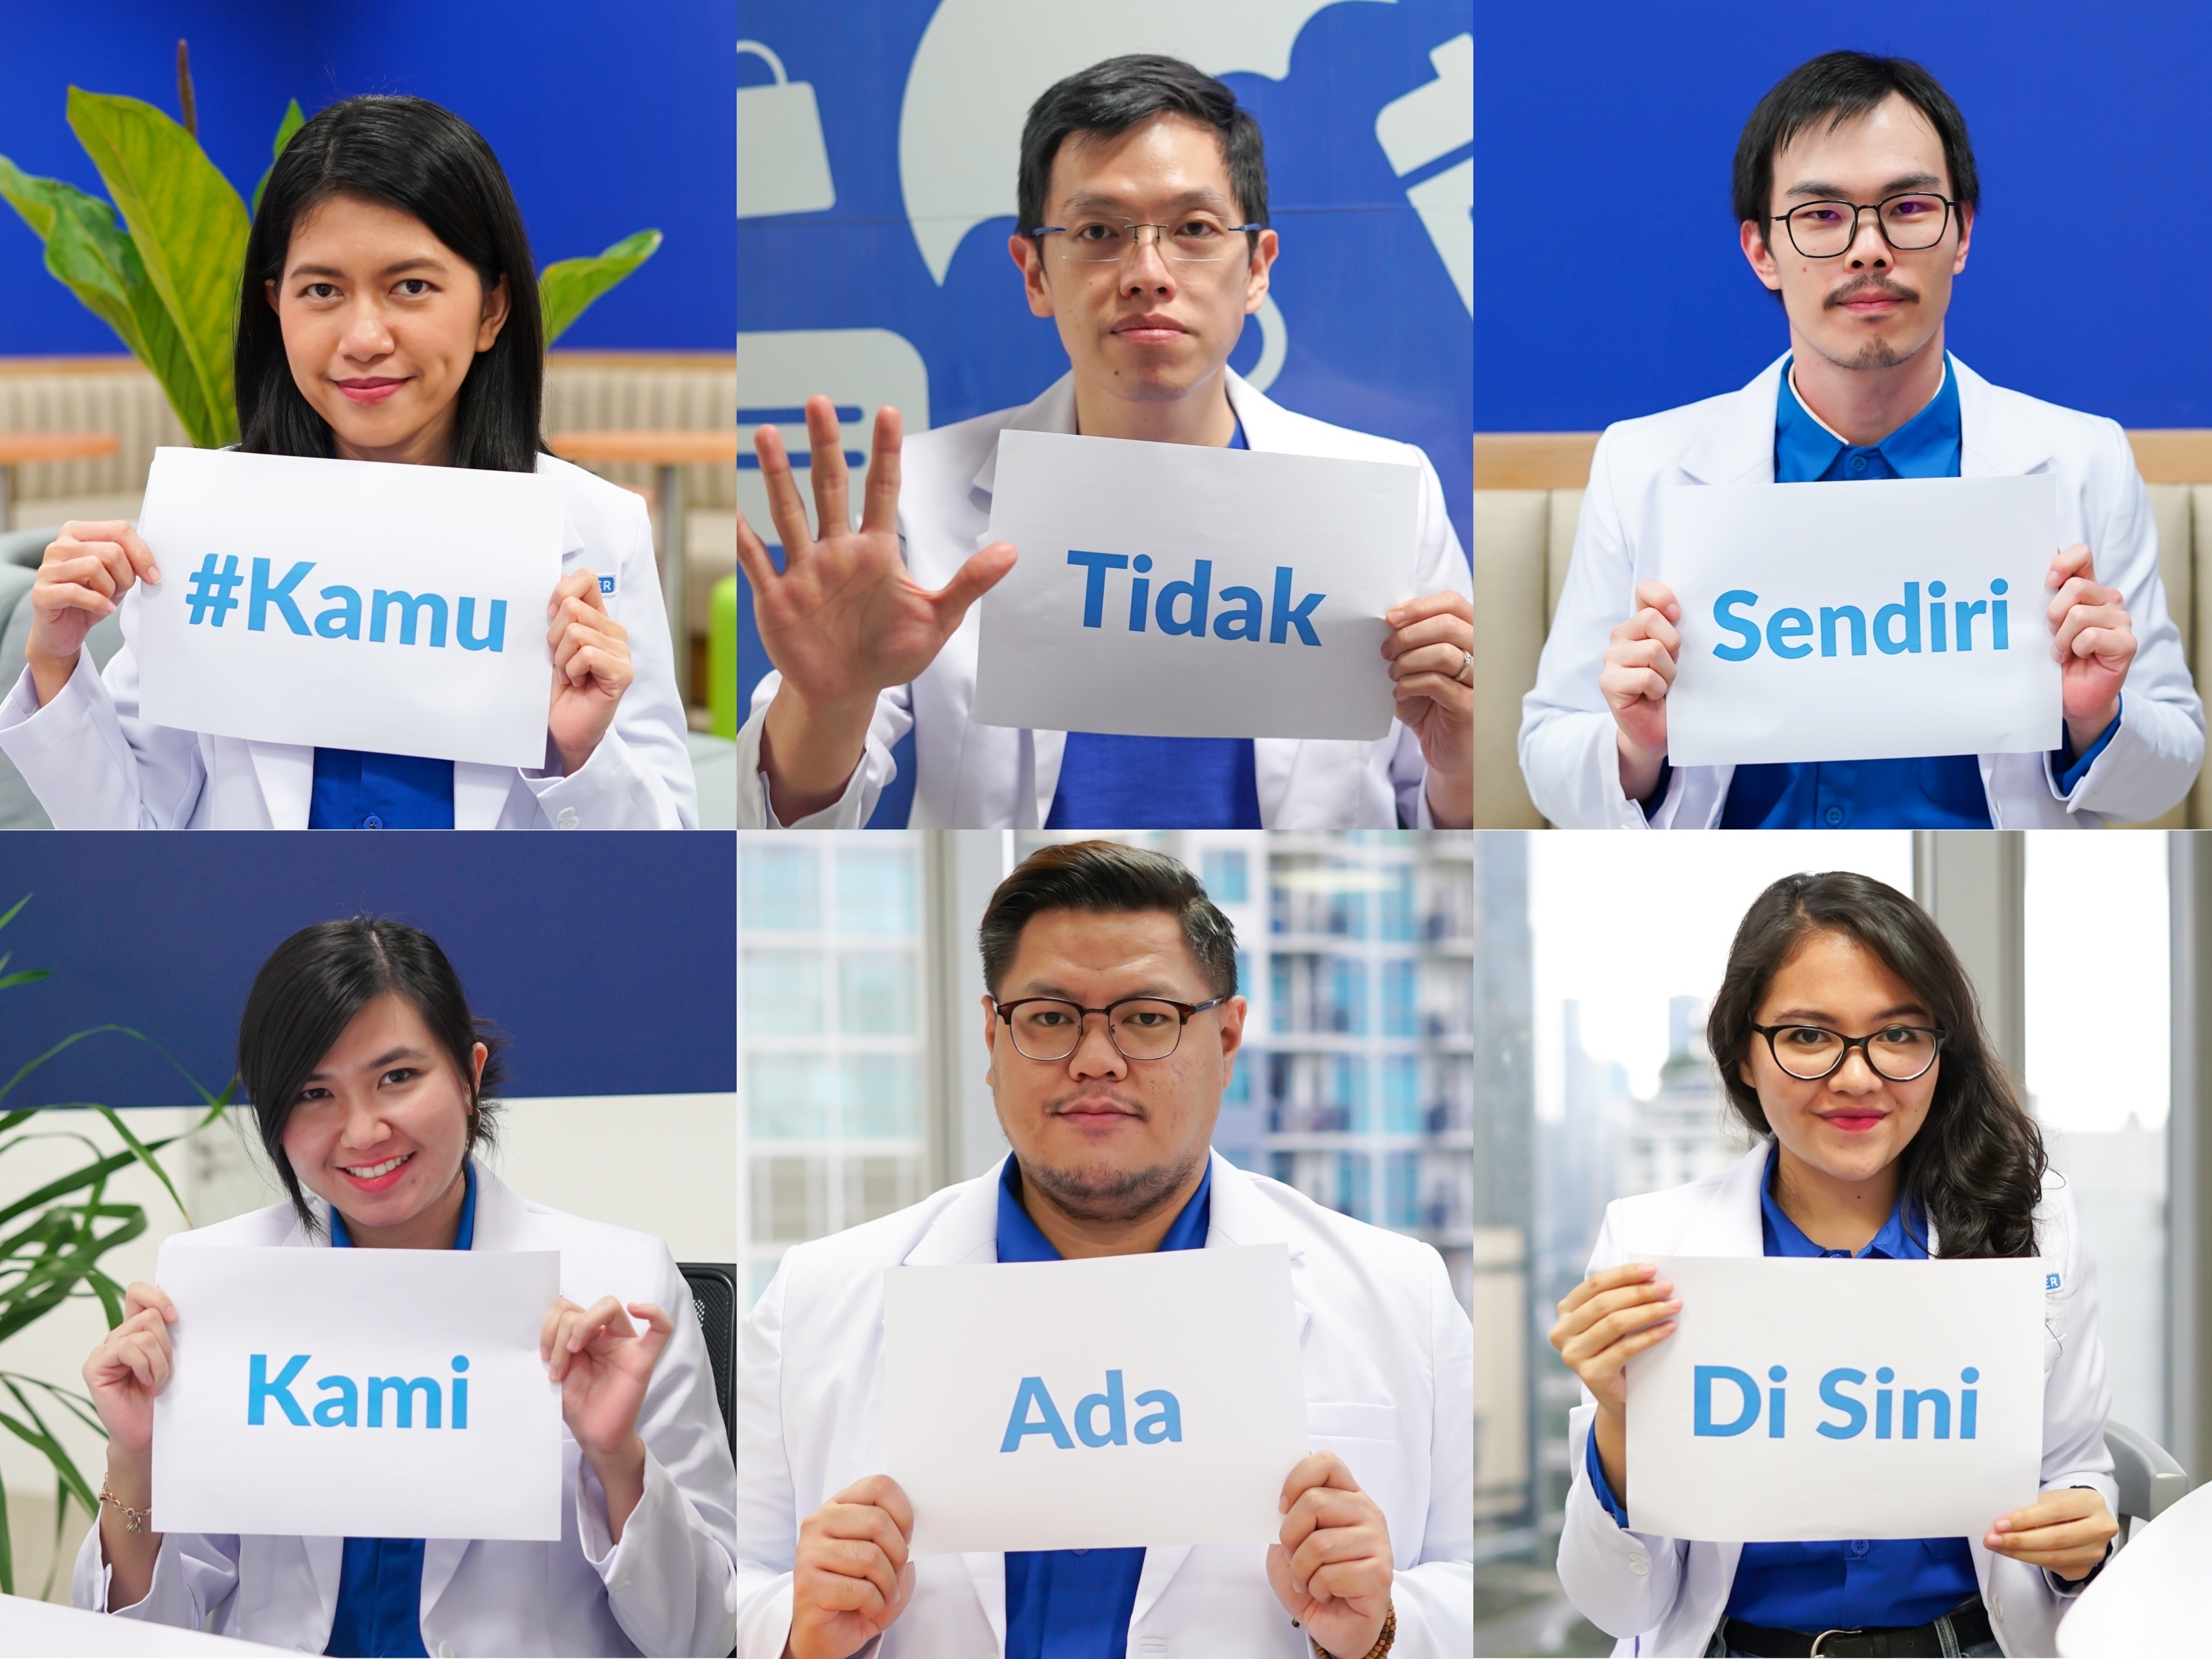 6 Indonesian Health Startups and Their Roles in Community